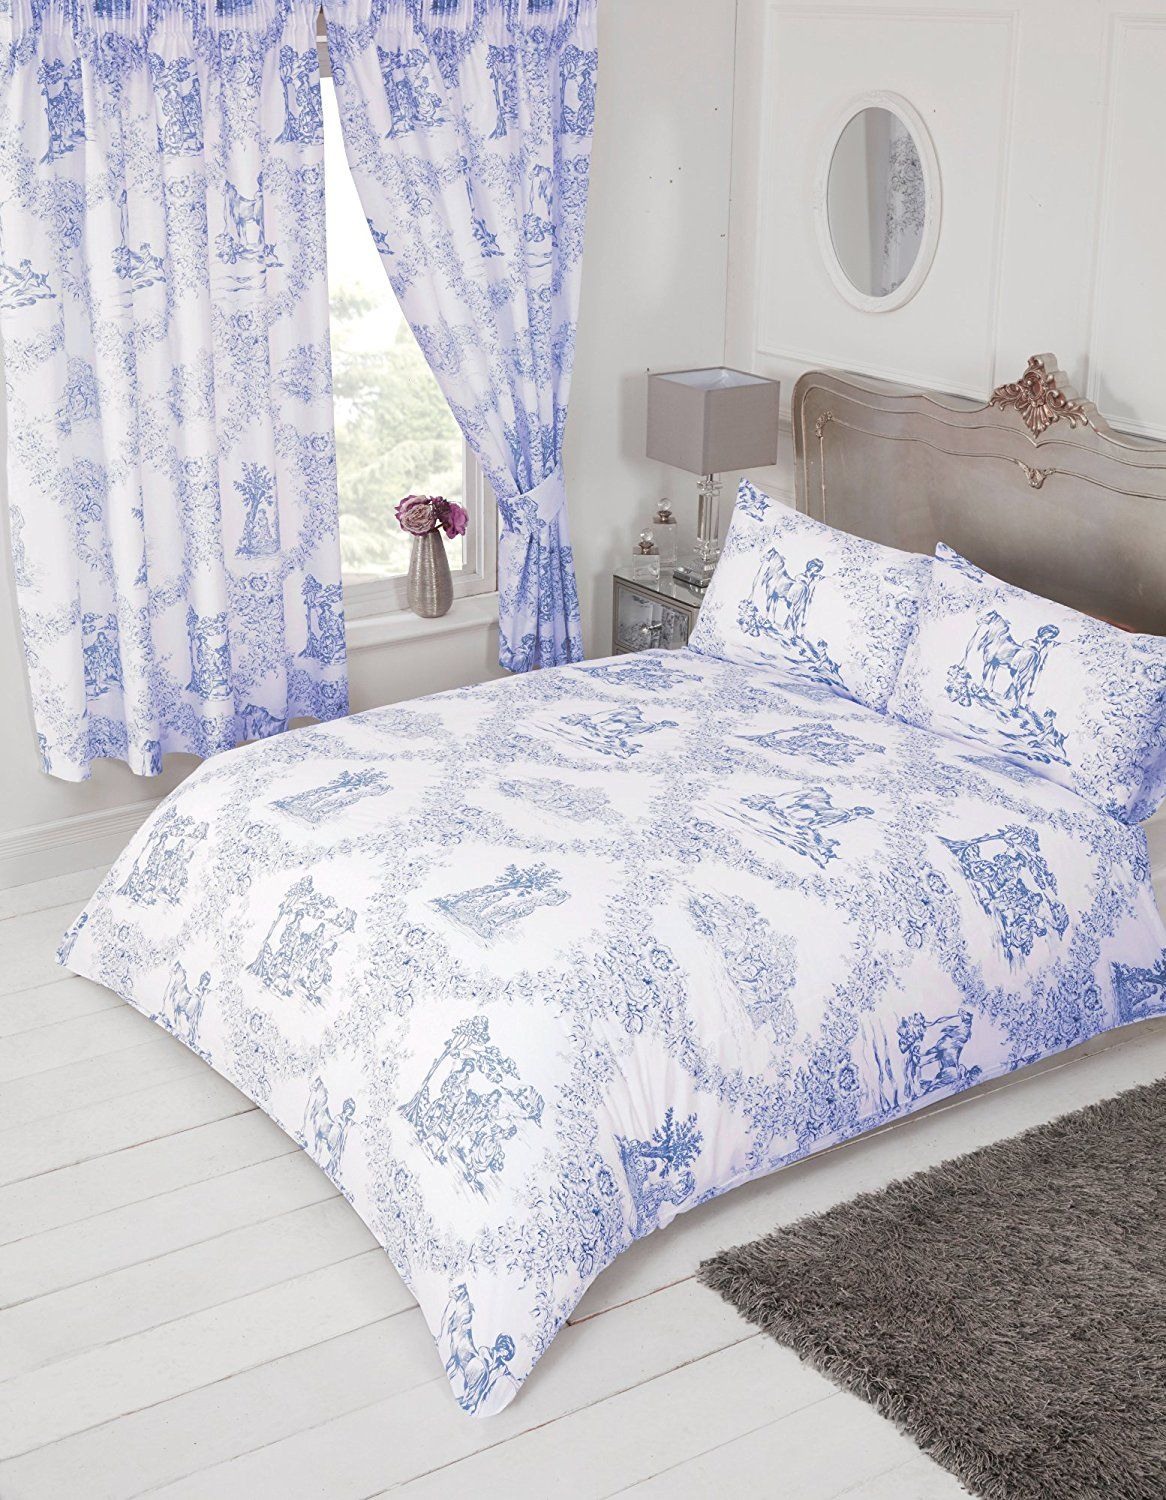 French Country Design Toile De Jouy Bedding Duvet Quilt